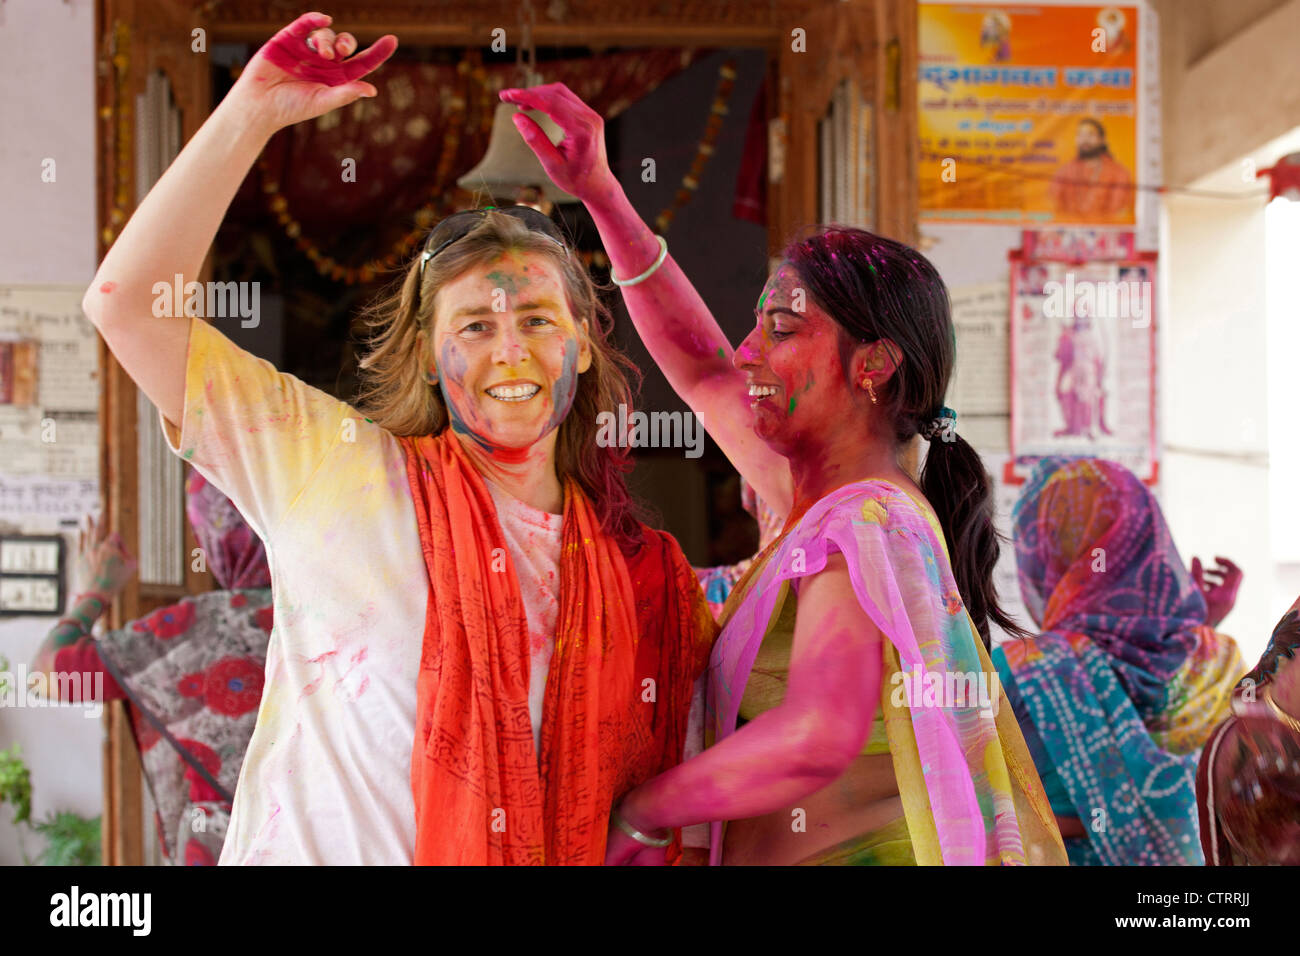 Tourist and Indian women colourfully dyed celebrating the Holi festival, Festival of Colours in Mathura, Uttar Pradesh, - Stock Image